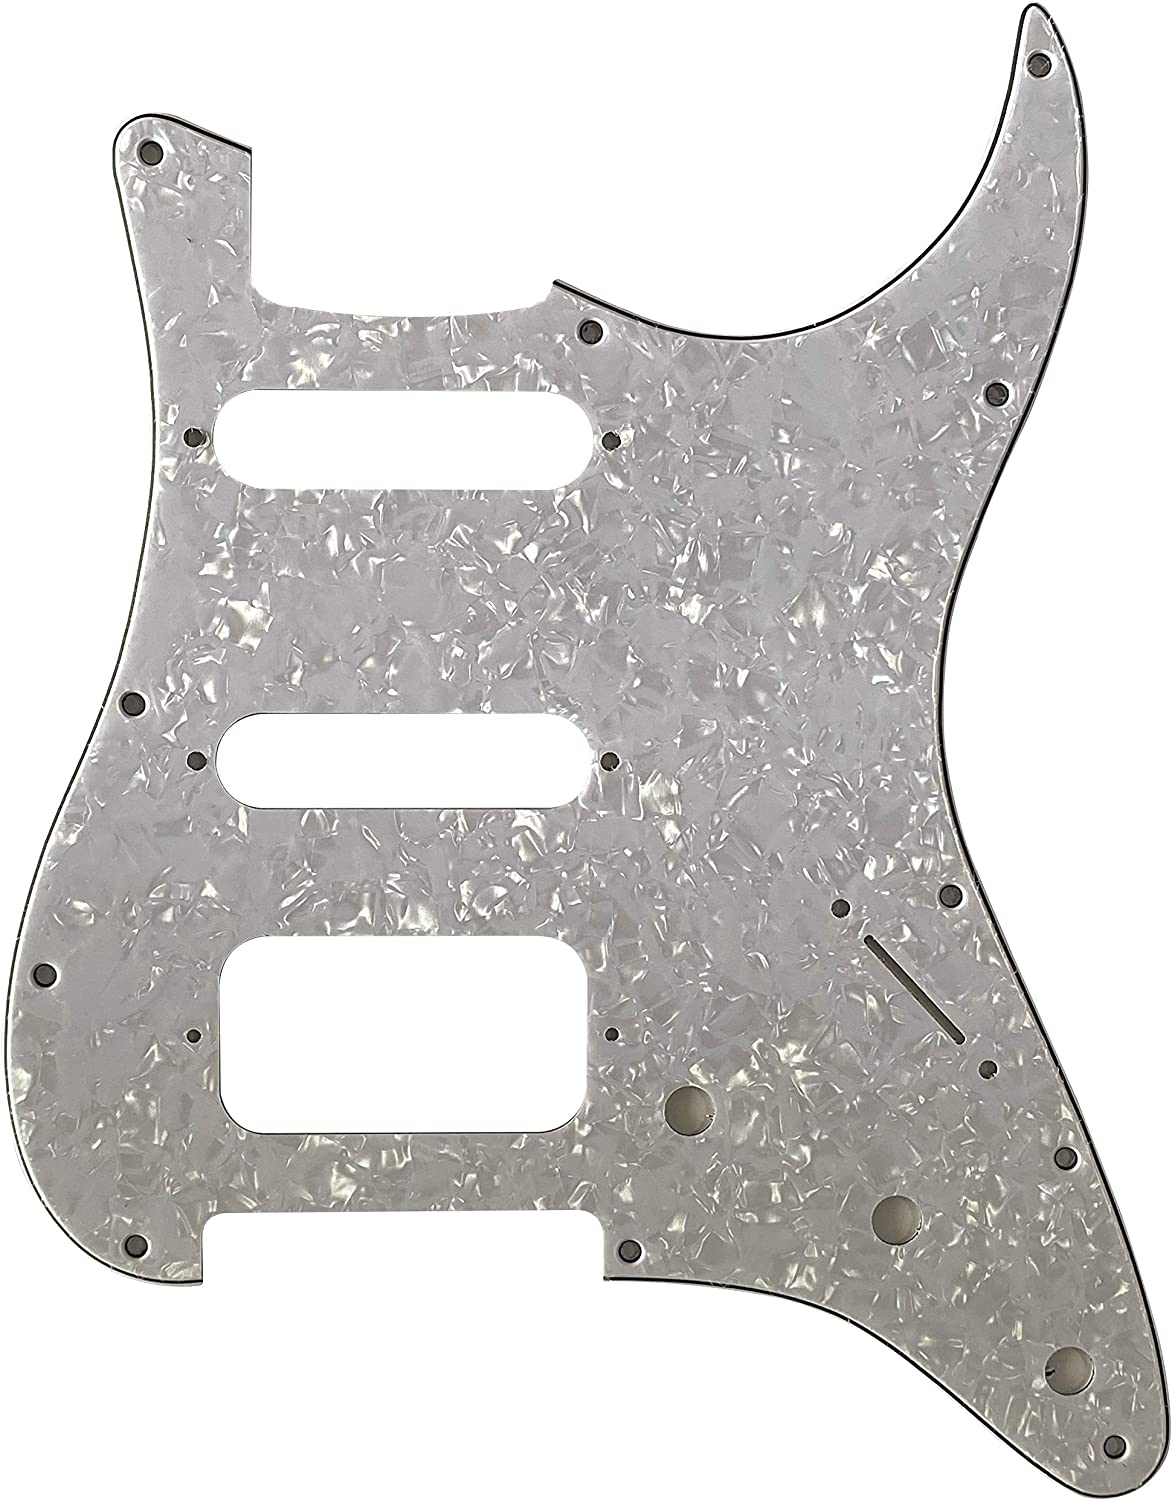 For Fender 11 Sctew Stratocaster Start HSS Guitar Pickguard 4 Ply Red Pearl